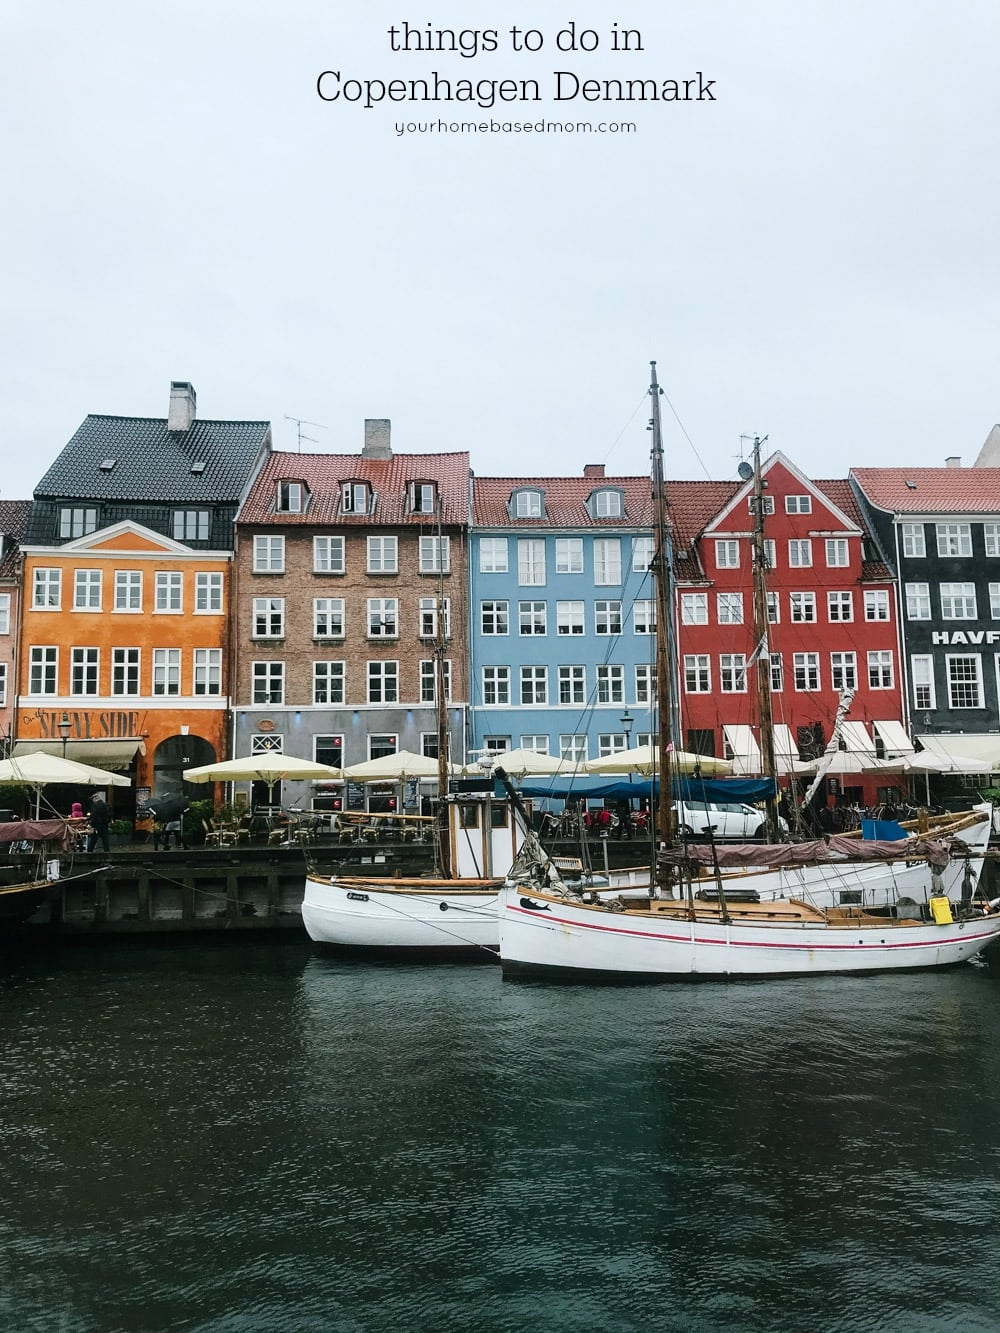 Nyhaven port in Copenhagen